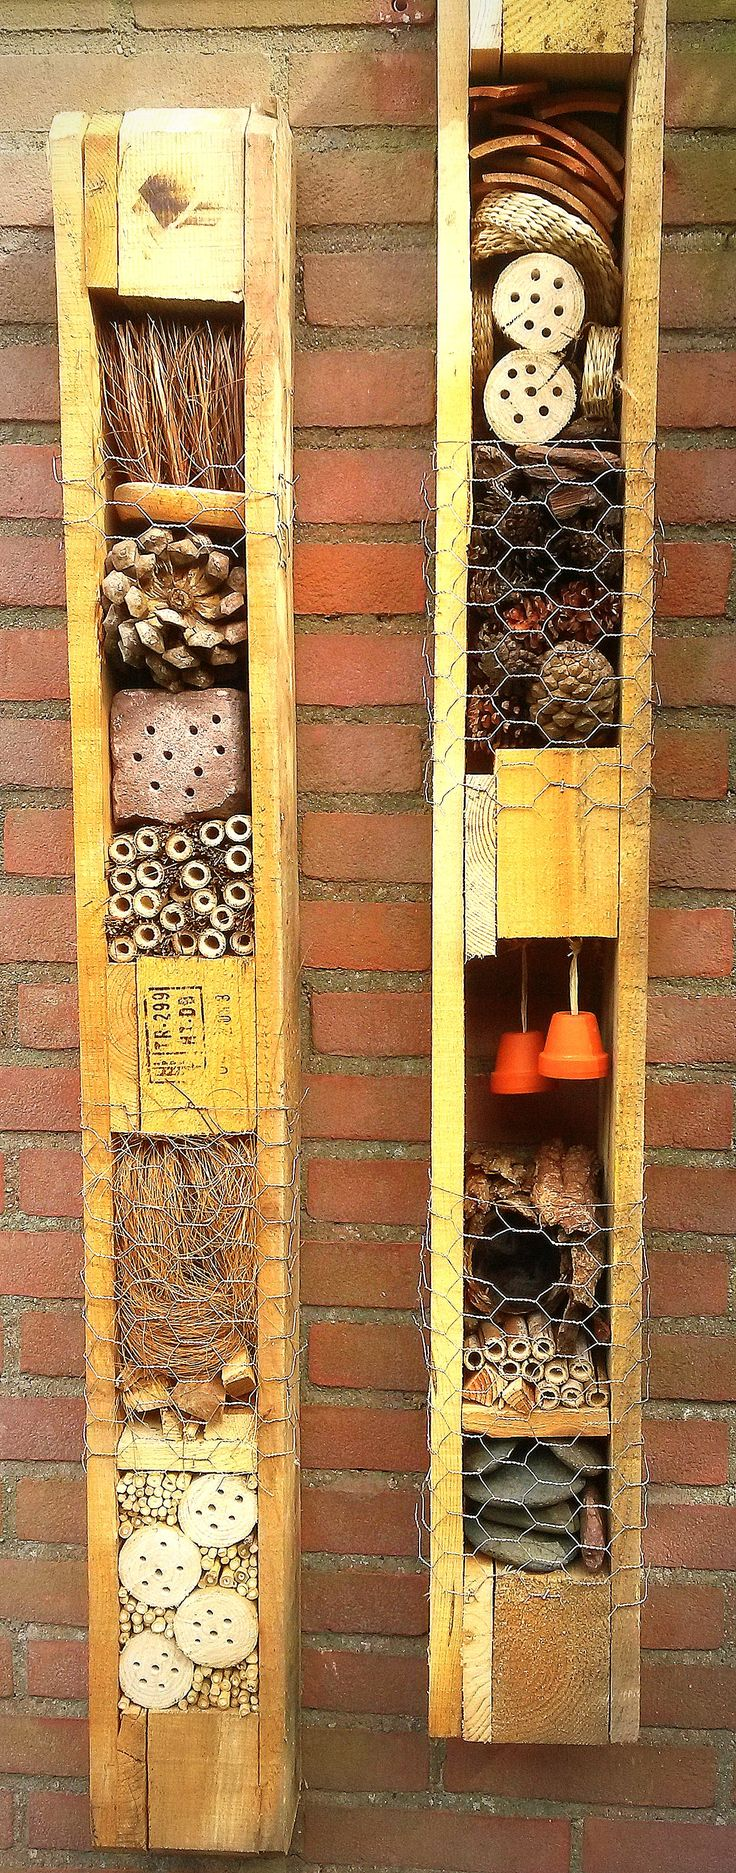 insect hotel from palet